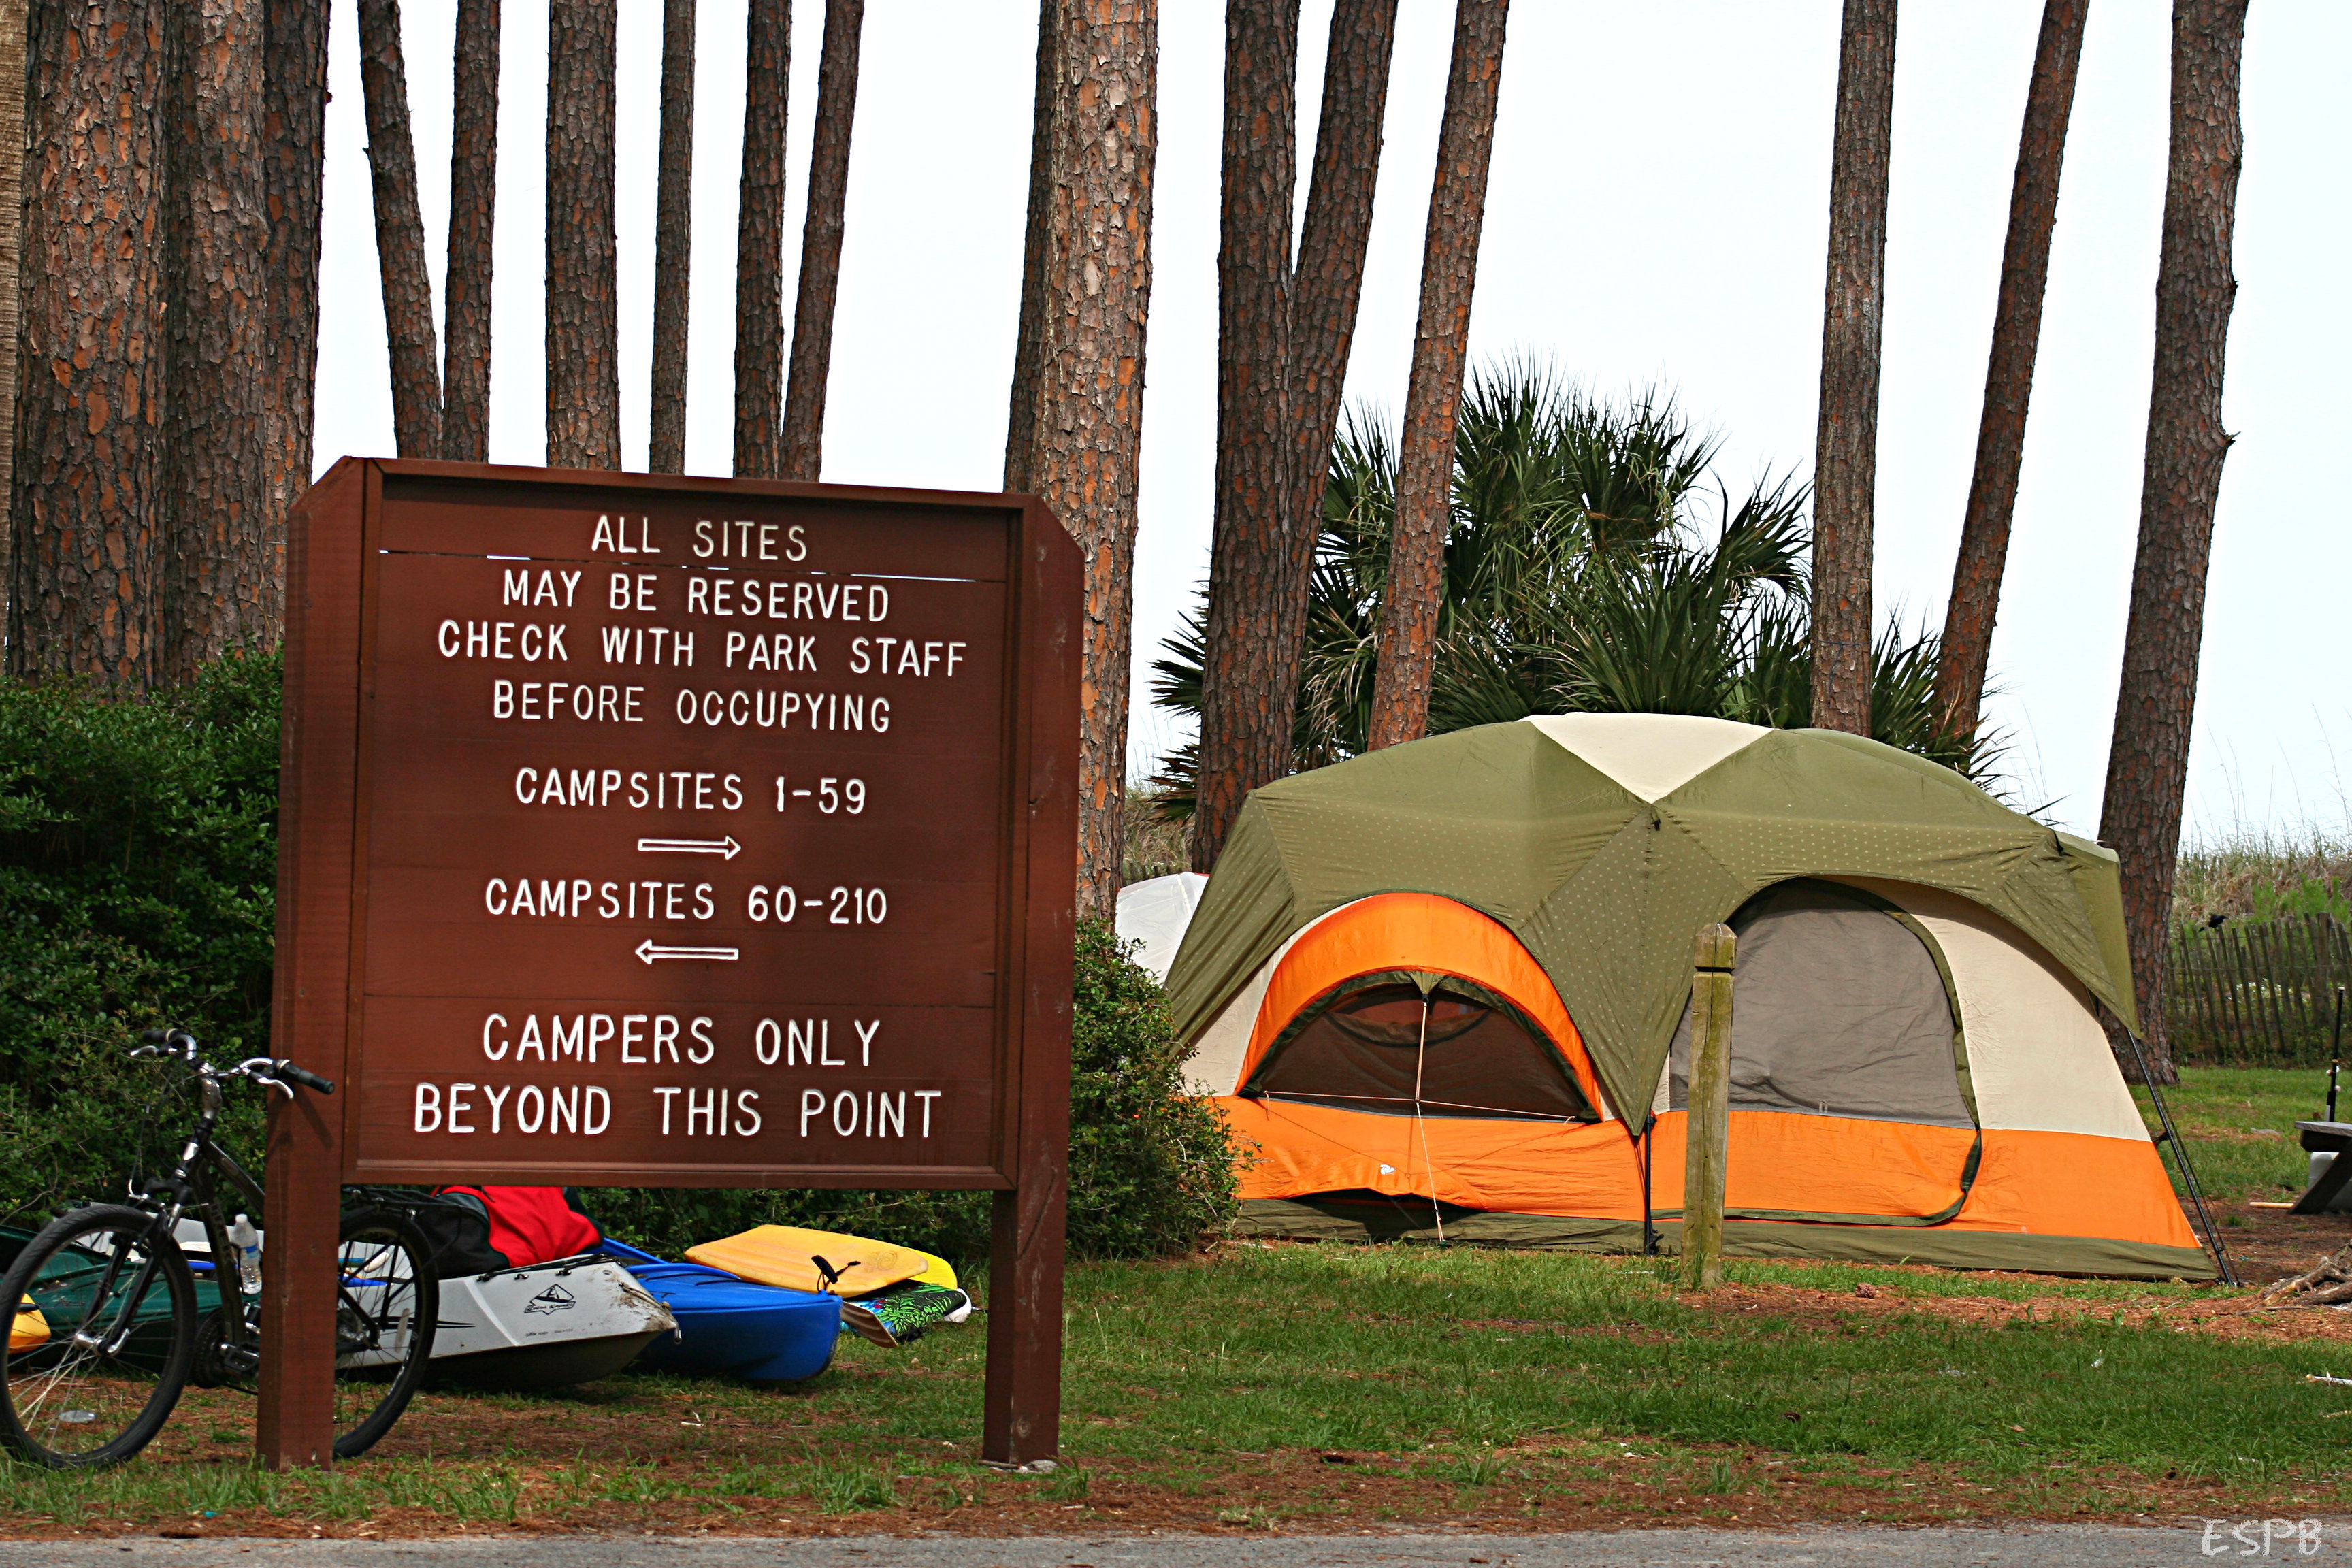 beaufort campgrounds beaufort sc best local ors guide hunting island state park campground